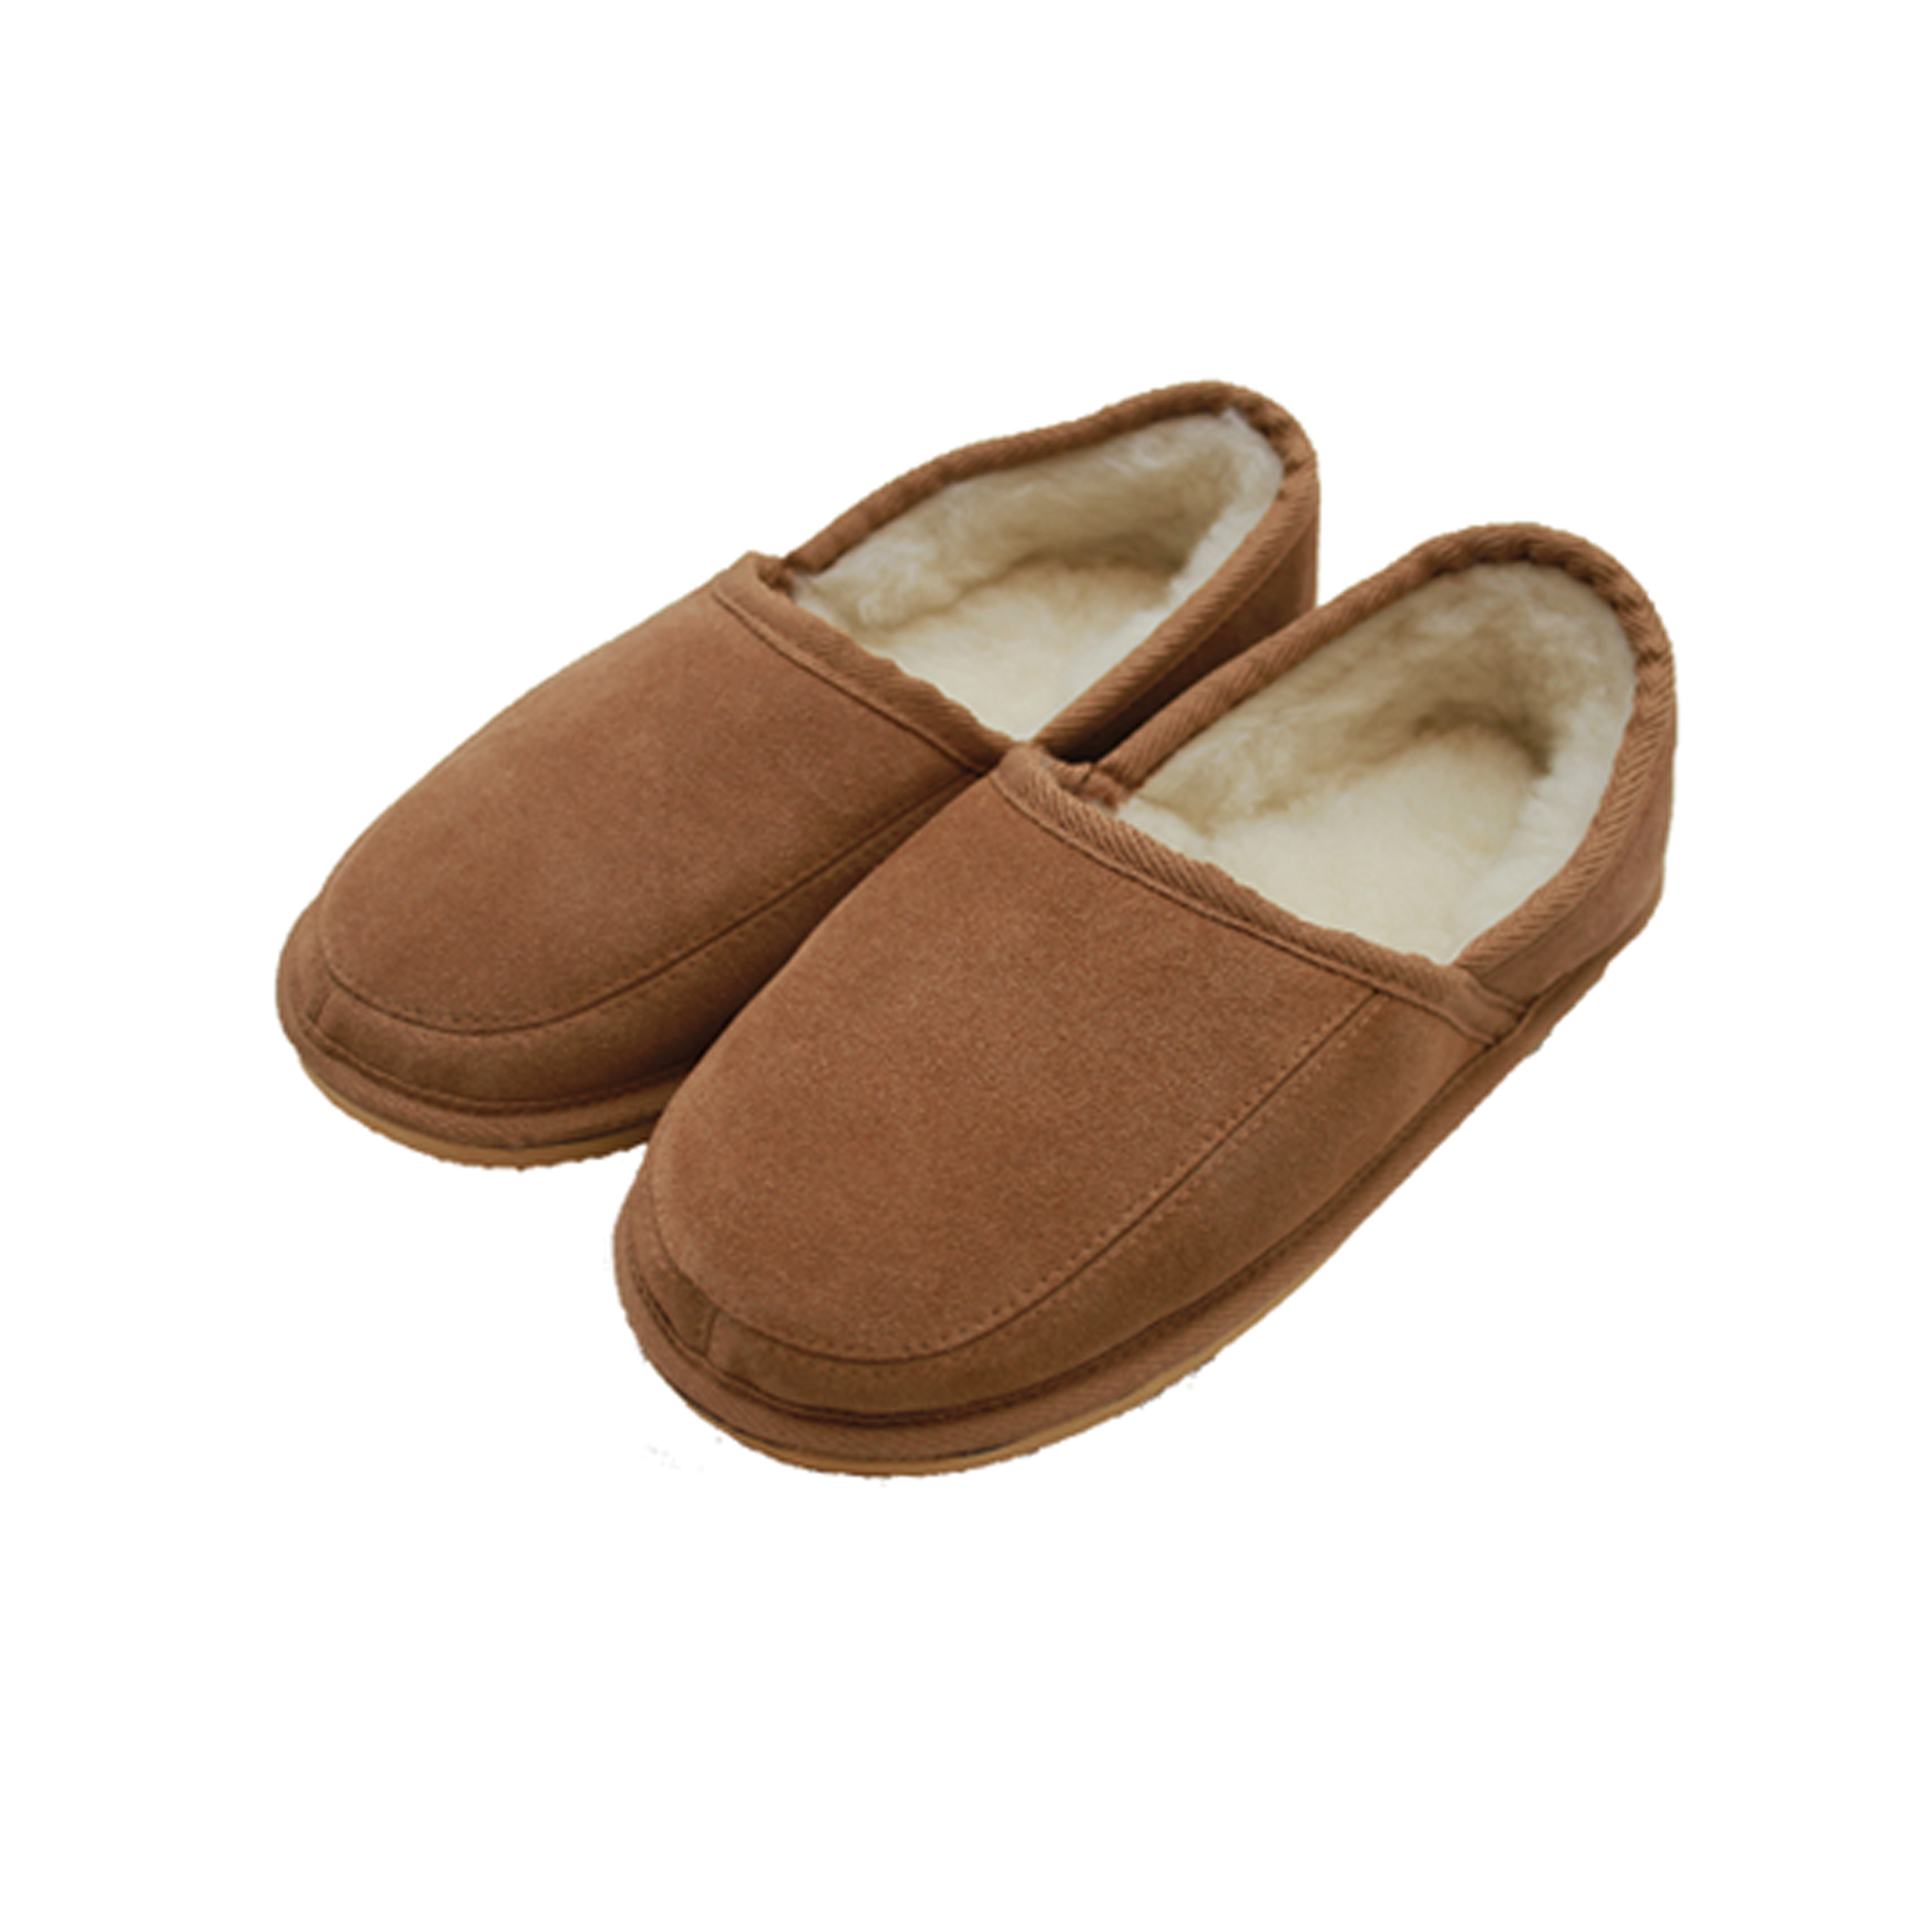 Wool lined slipper – Dominic